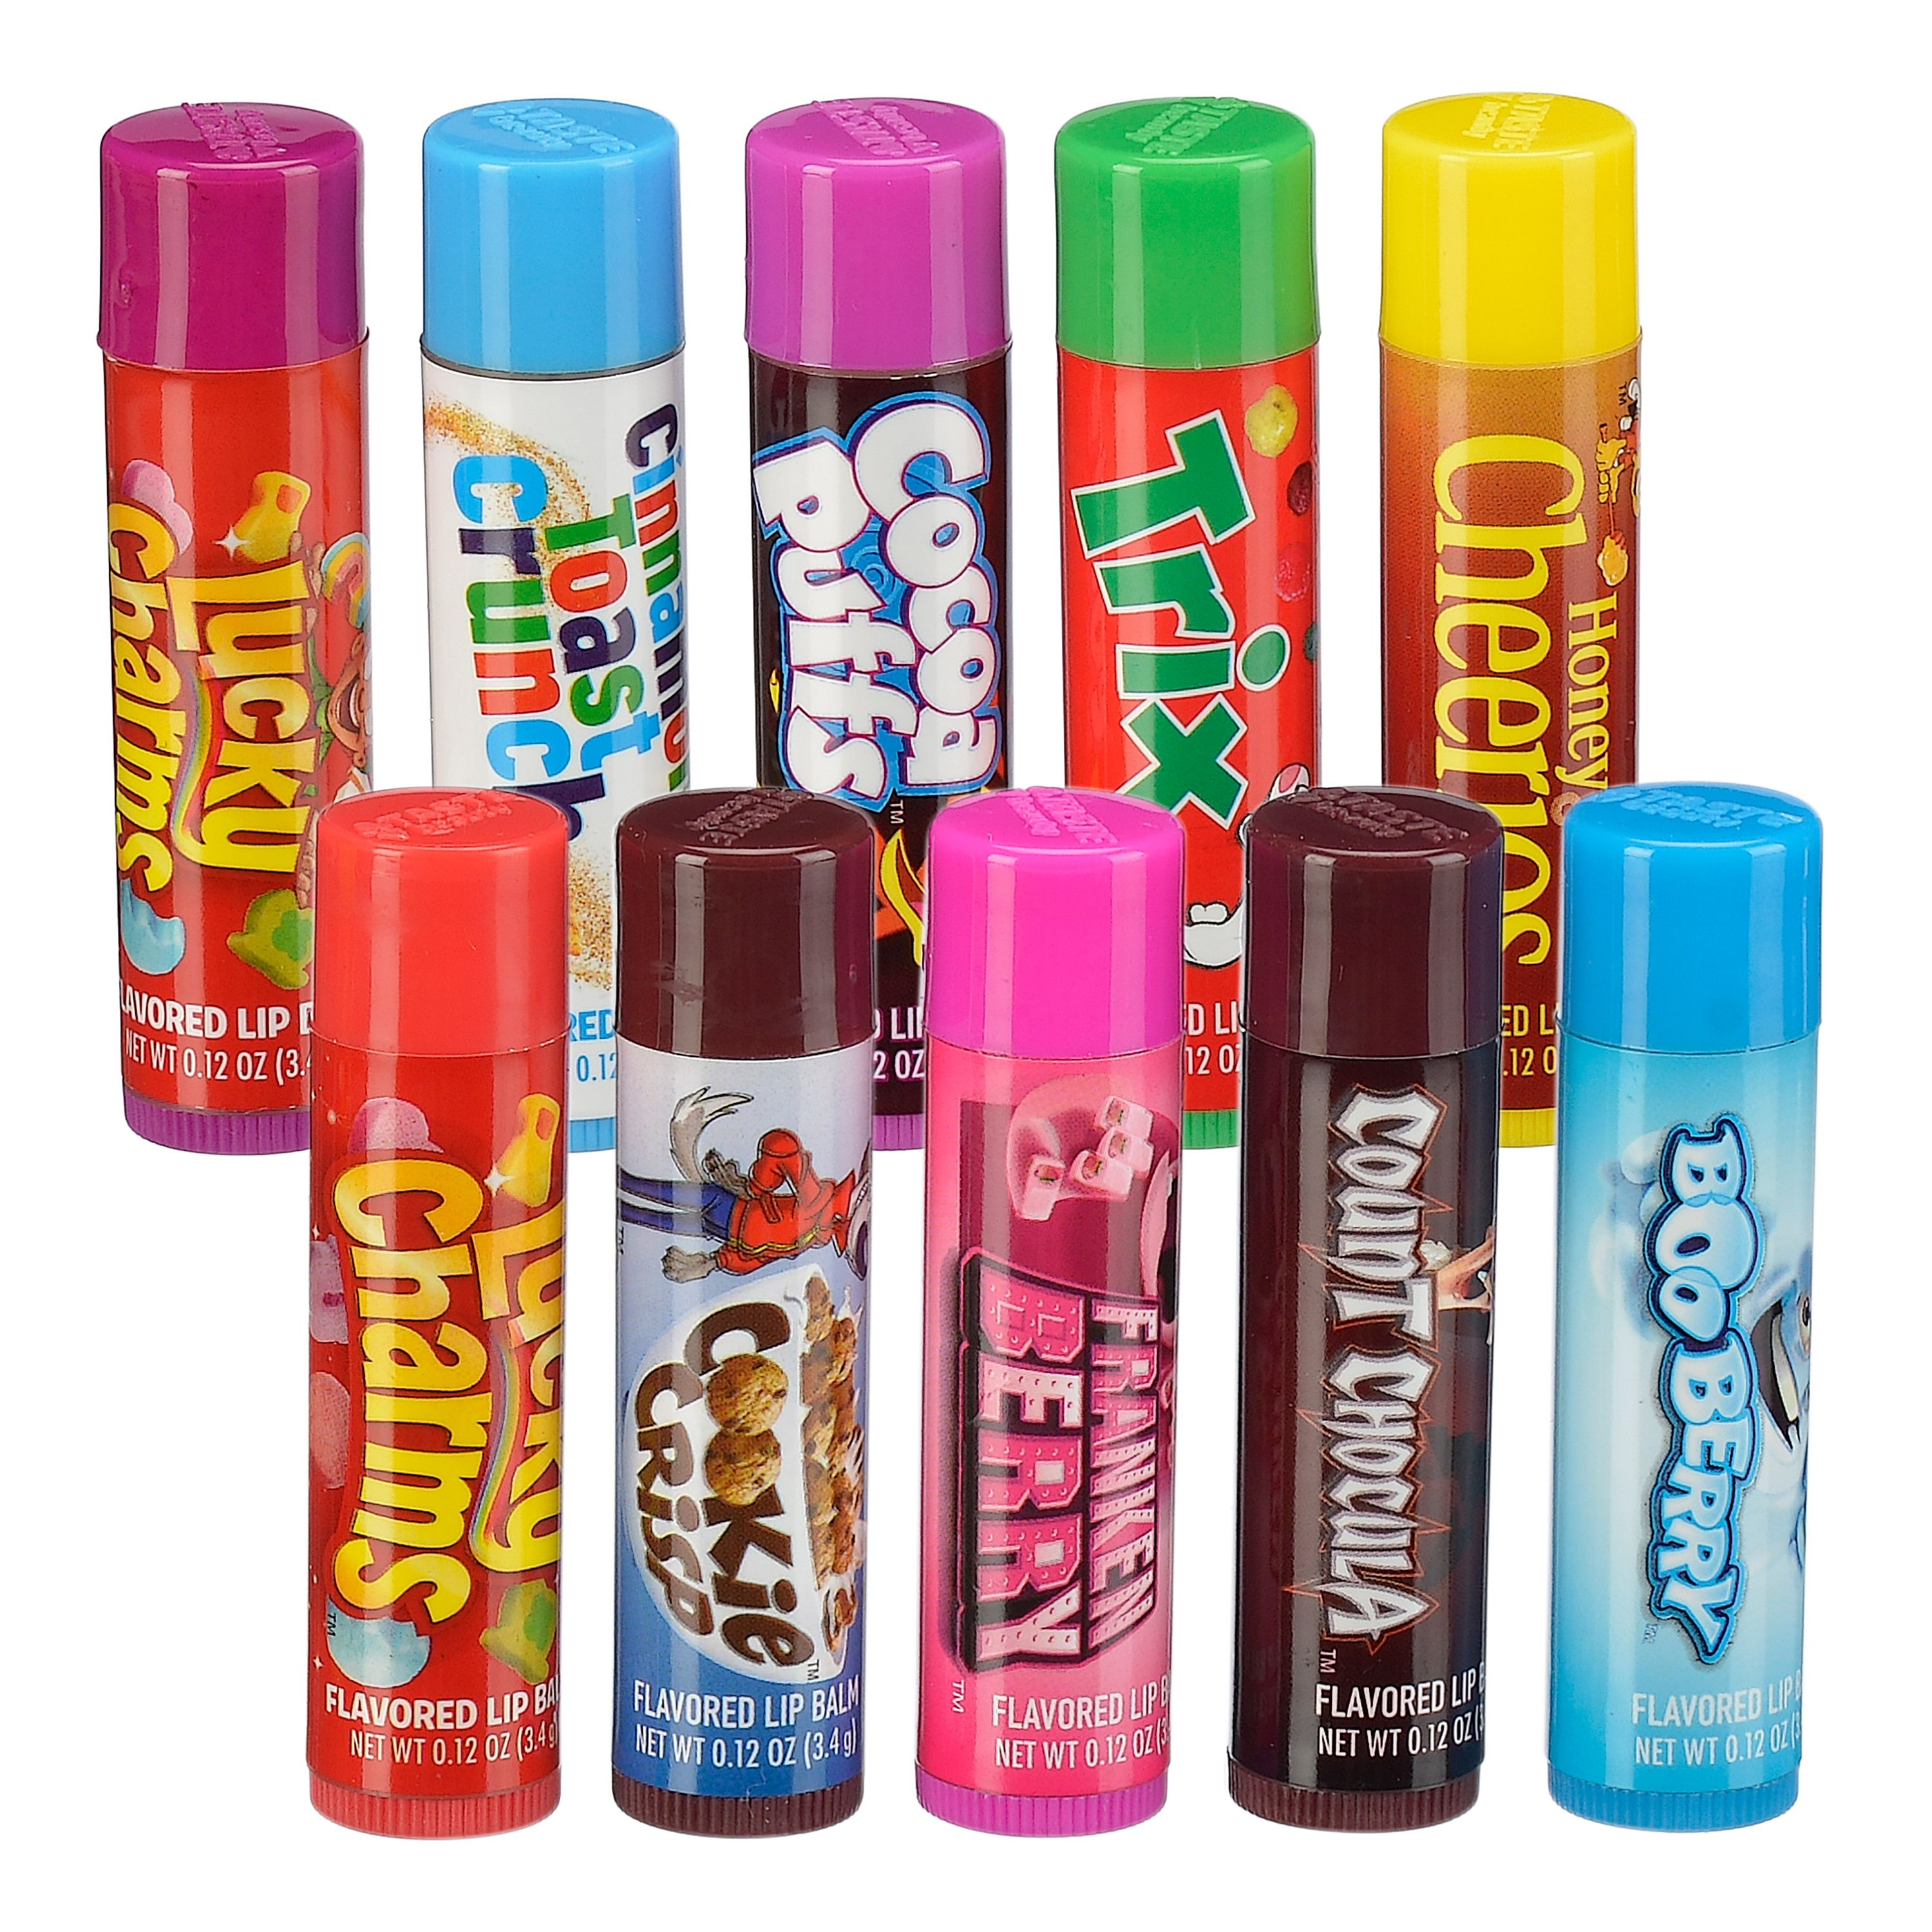 General Mills Breakfast Pack Cereal Flavored Lip Balm, 10 Pieces ($9.99 Value)